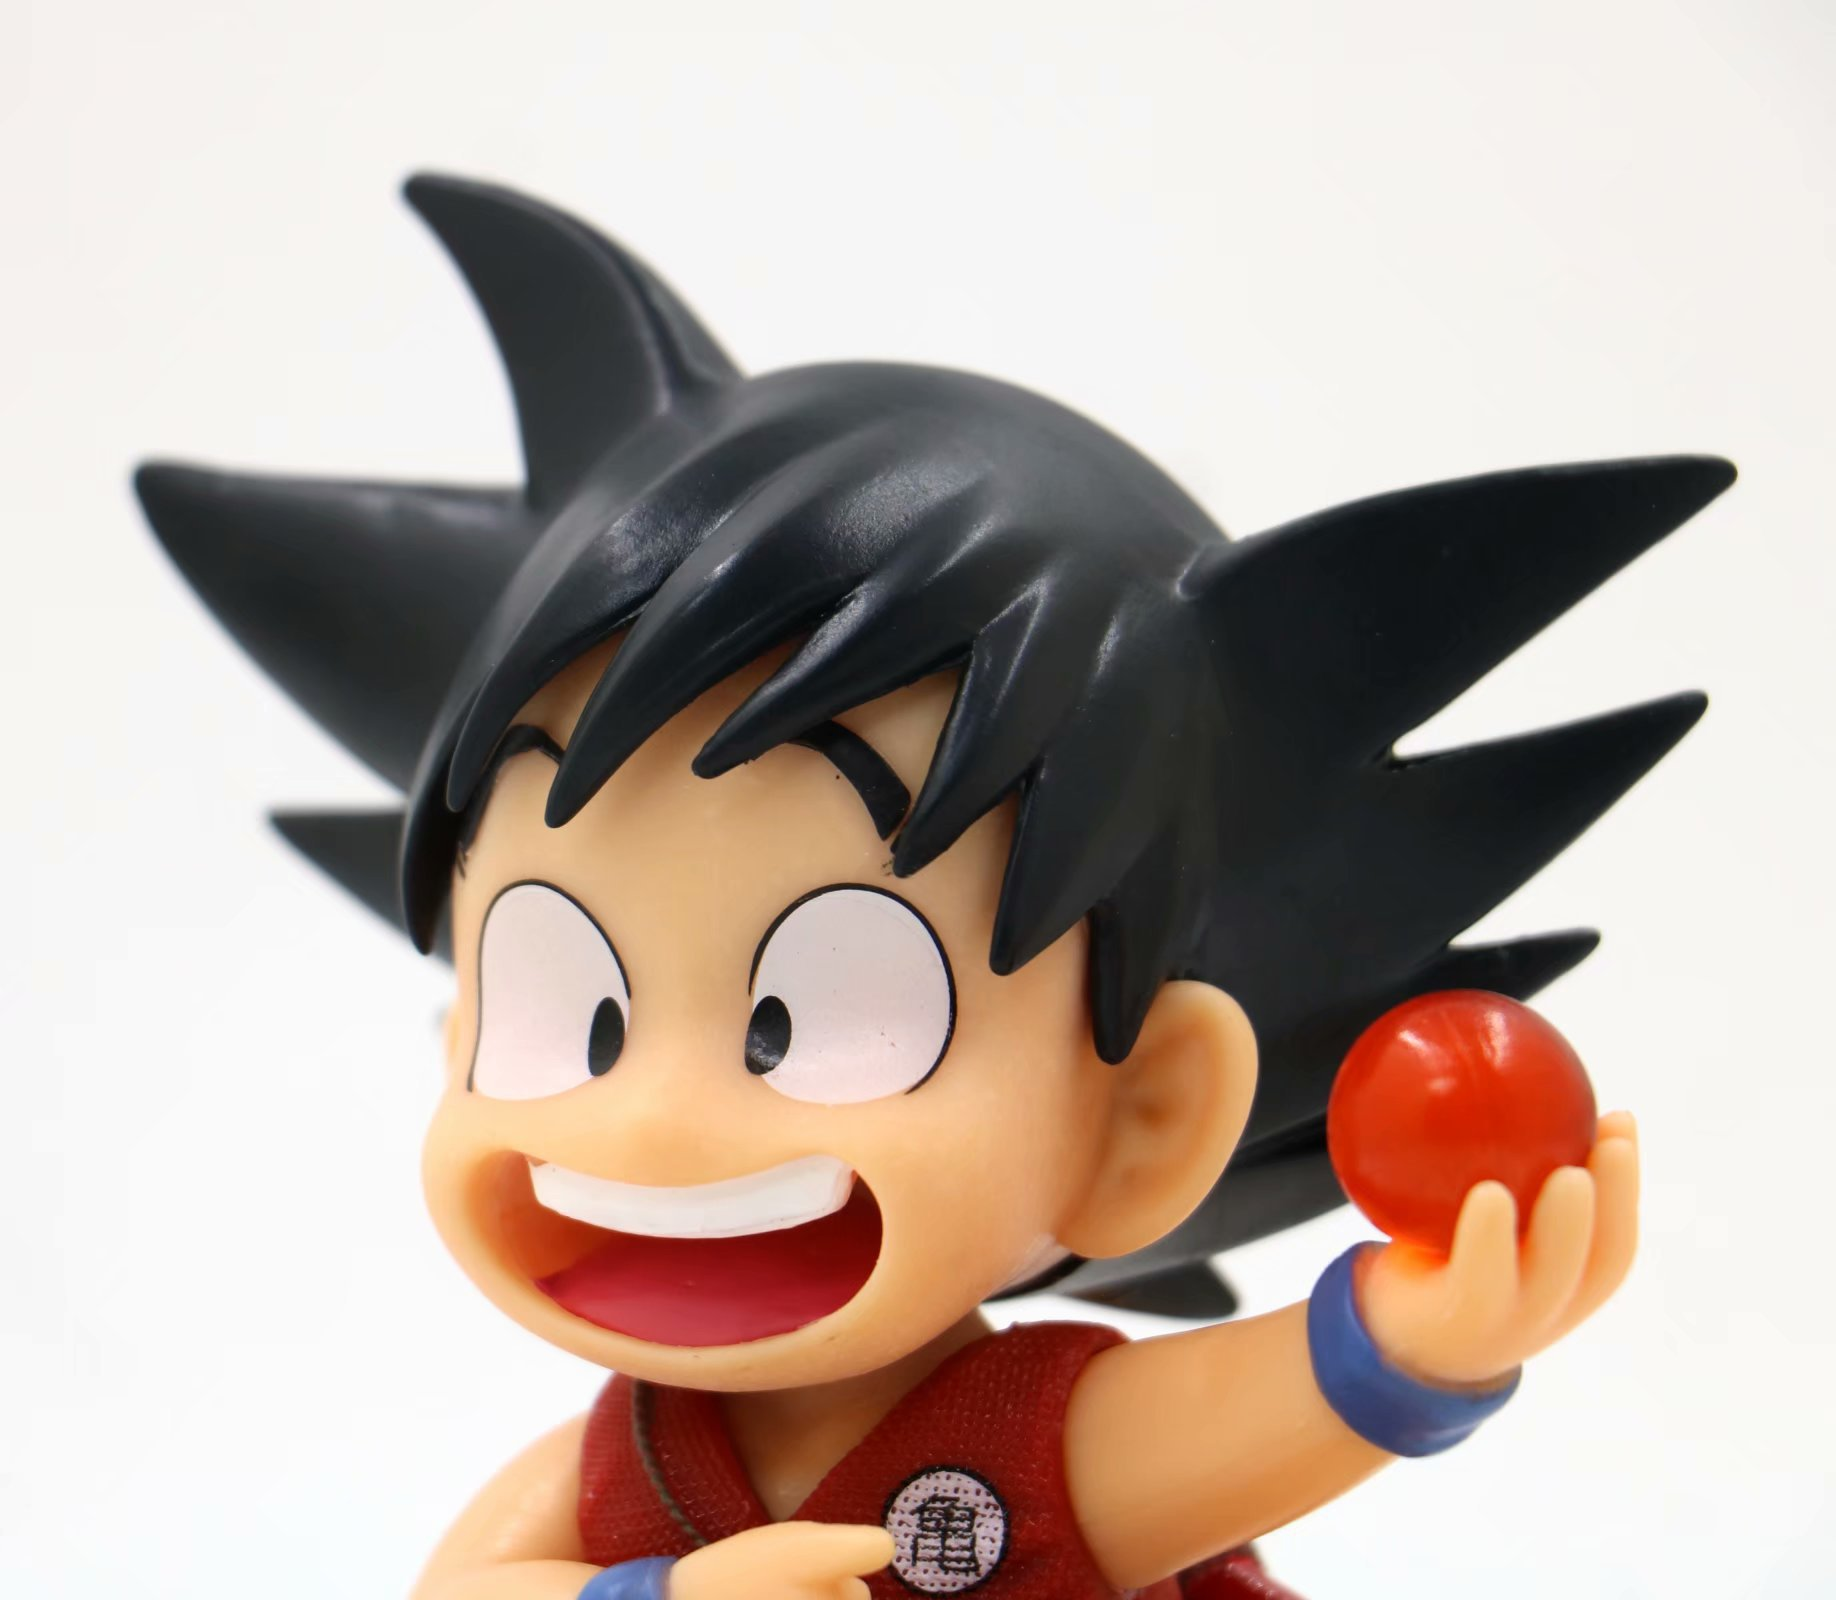 New 18cm Dragon Ball Z Goku Kid Action Figure PVC Collection Model toys brinquedos for christmas gift in Action Toy Figures from Toys Hobbies